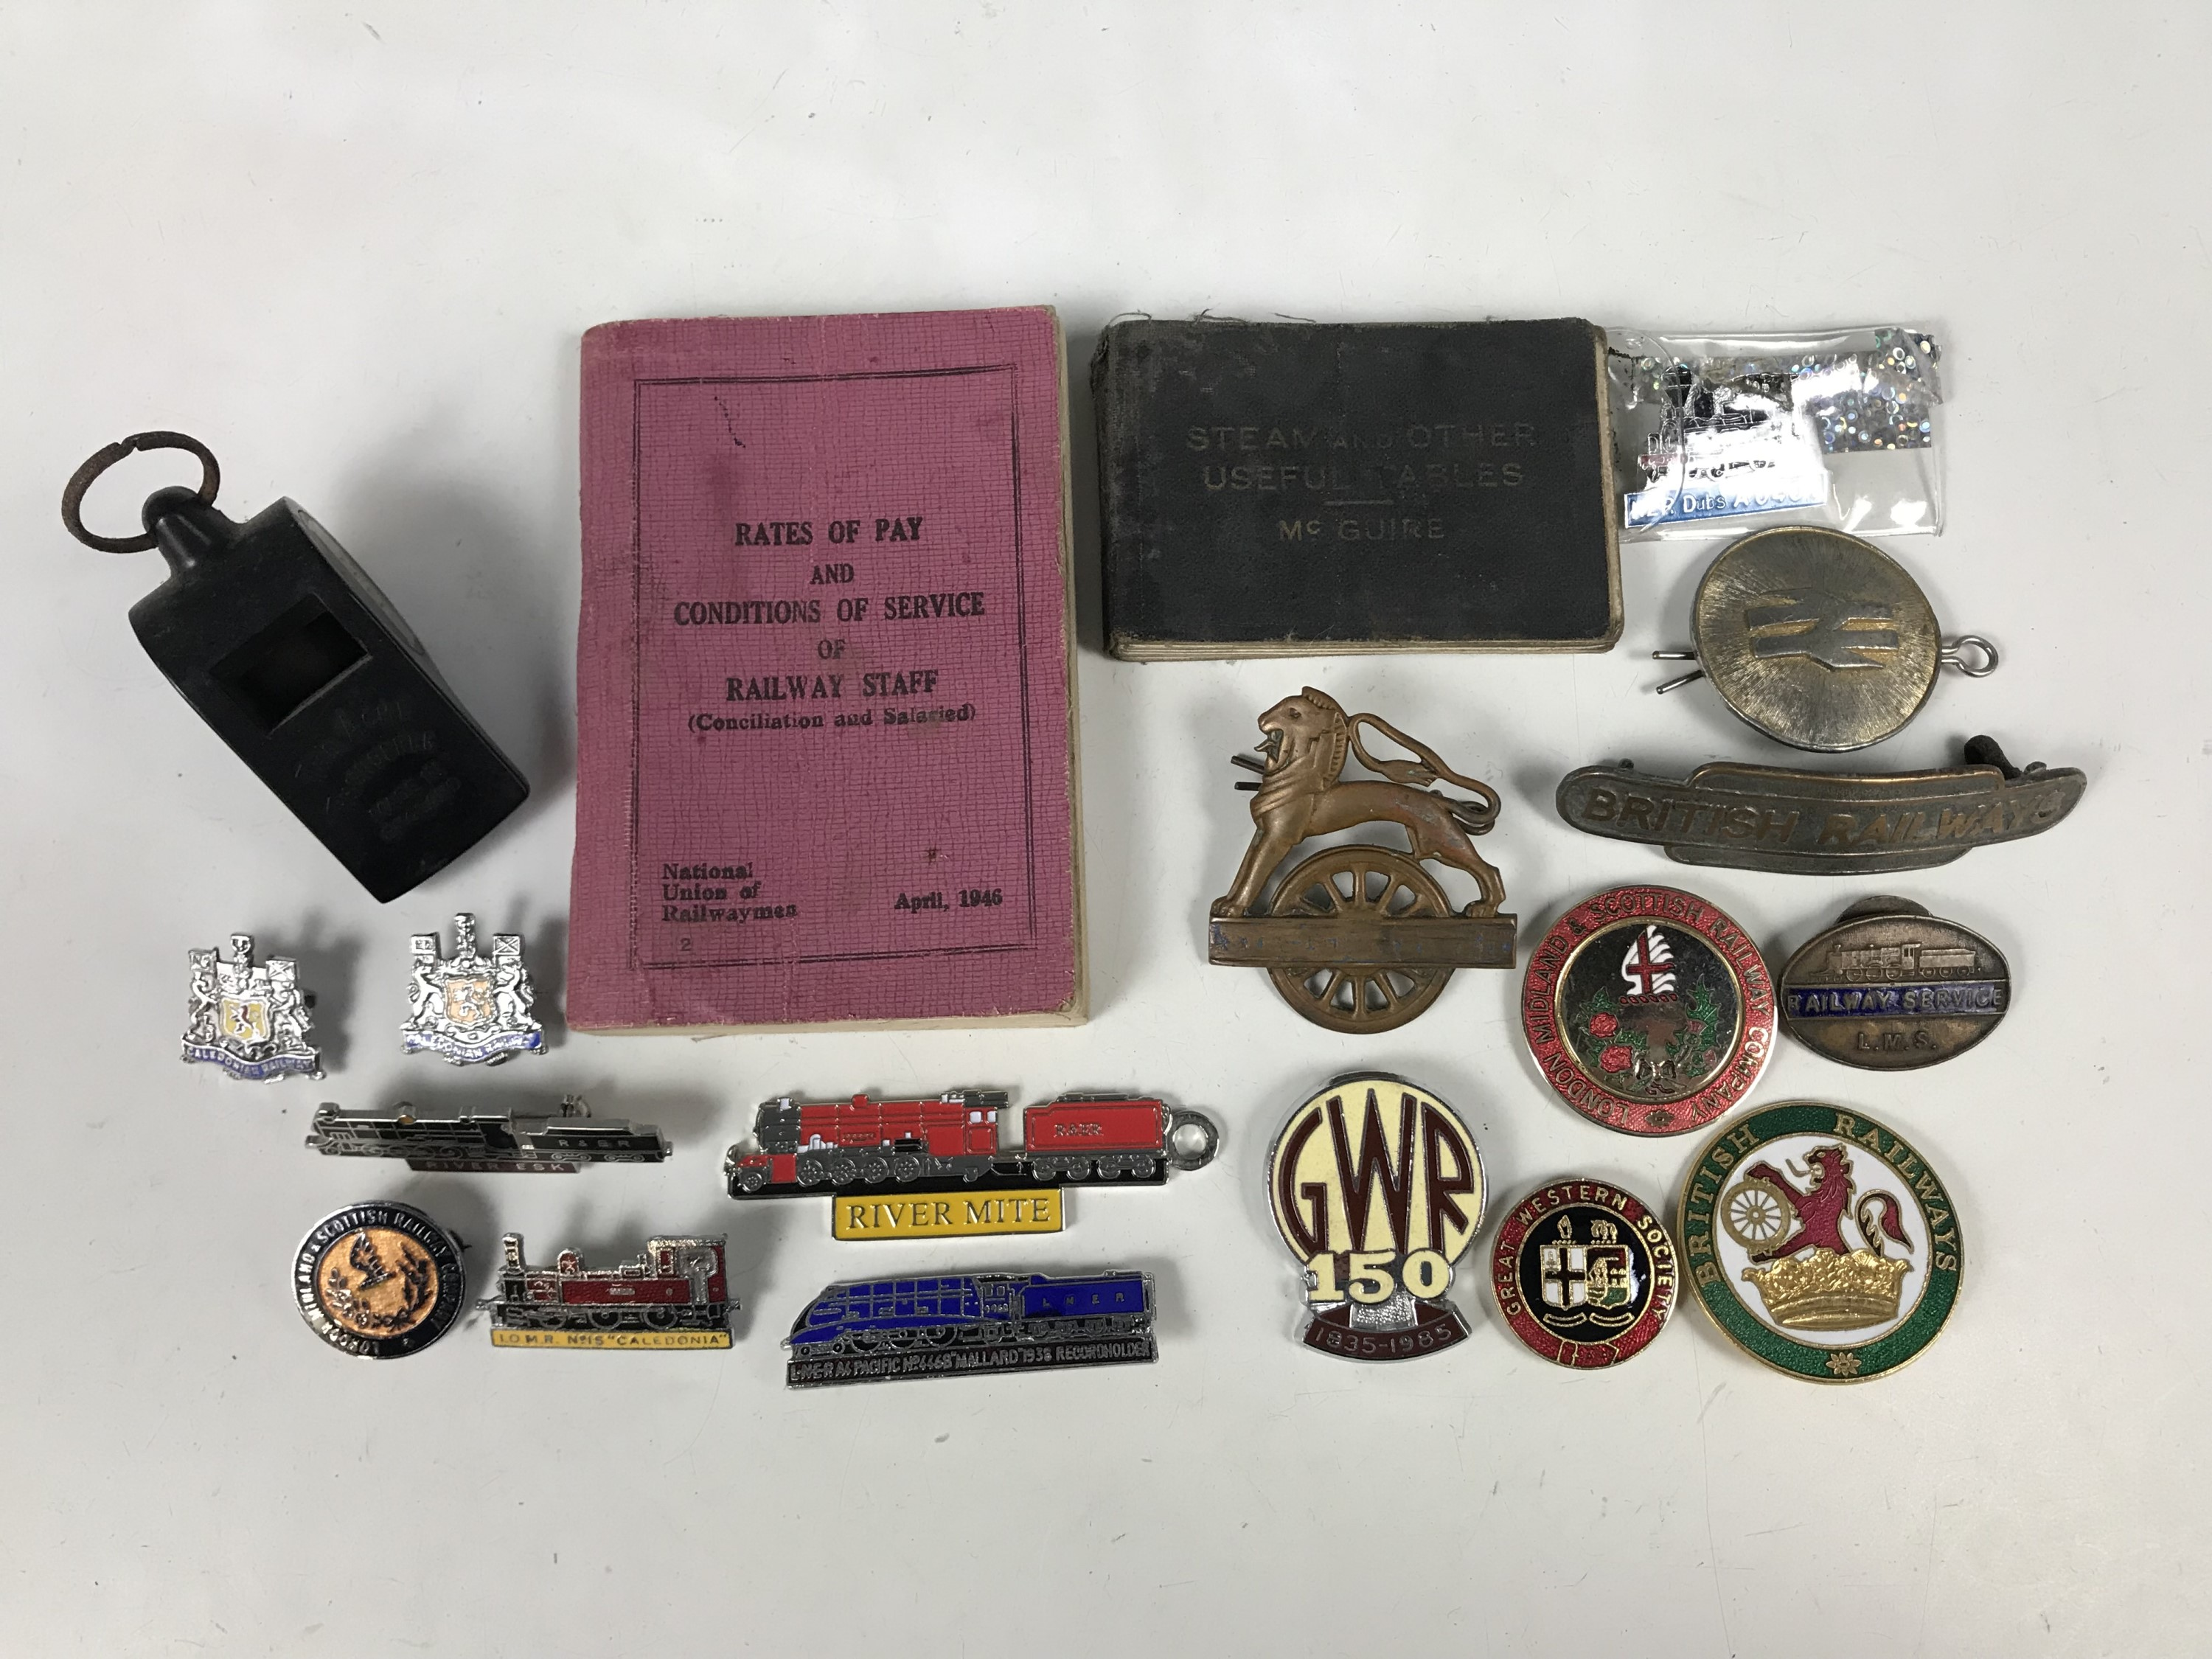 Lot 44 - Sundry British Railways badges and others, together with a British Rail whistle and pay book